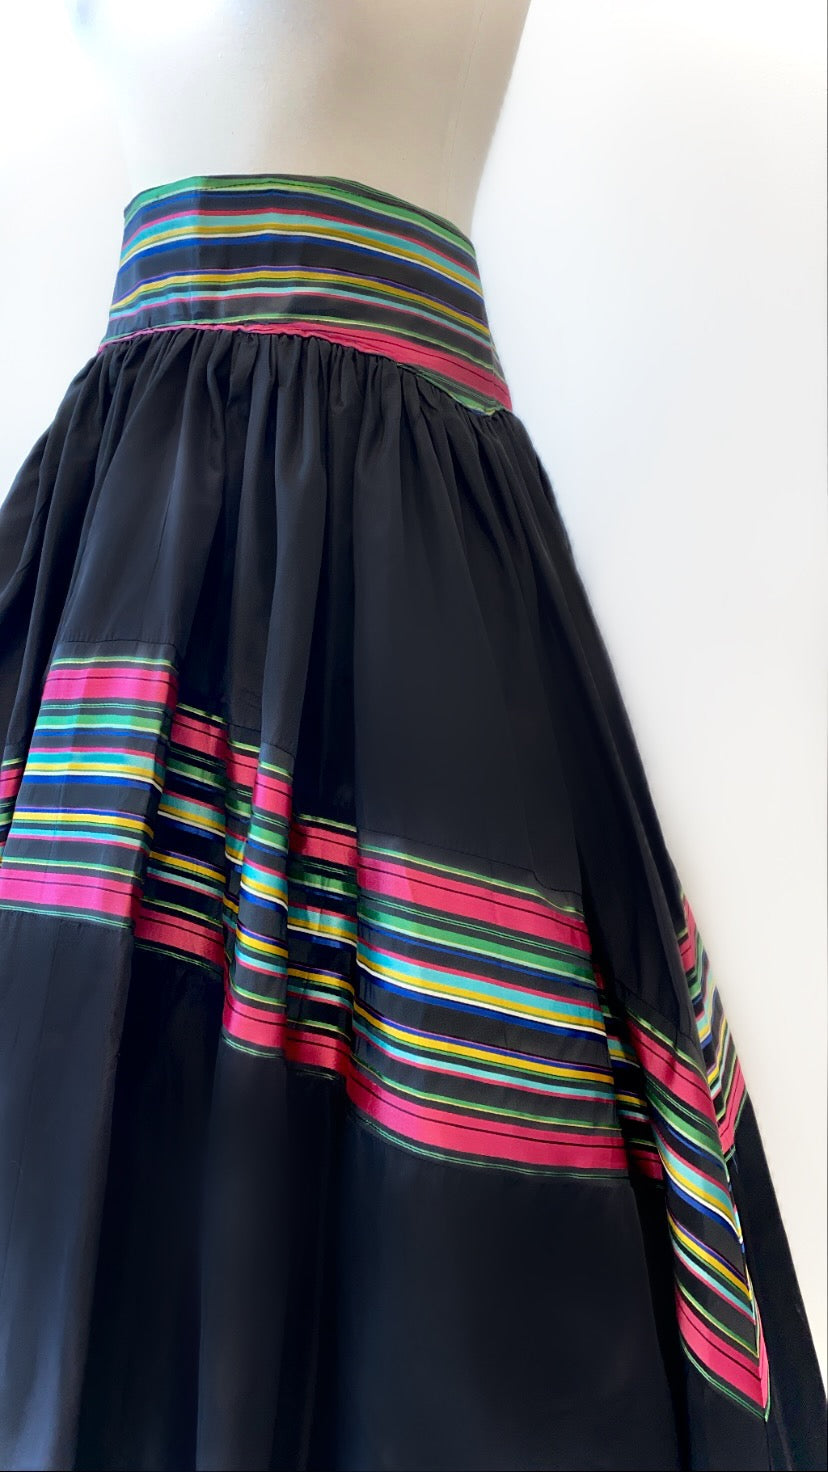 Vintage - Taffeta Maxi Skirt with Striped Waistband and Insert